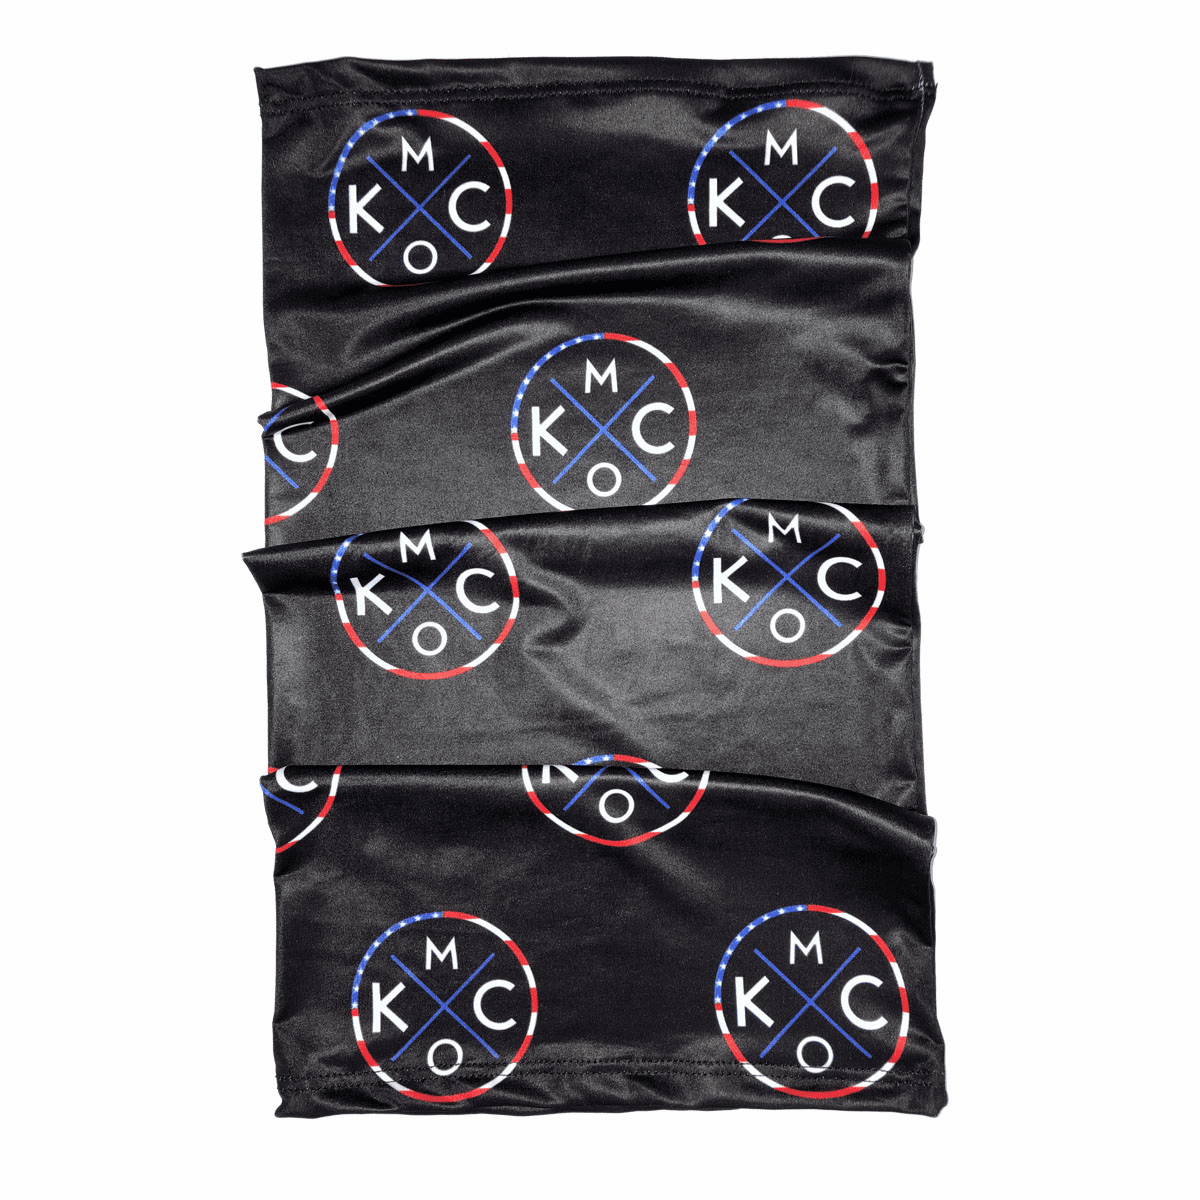 KCMO Stars and Stripes Gaiter Face Mask